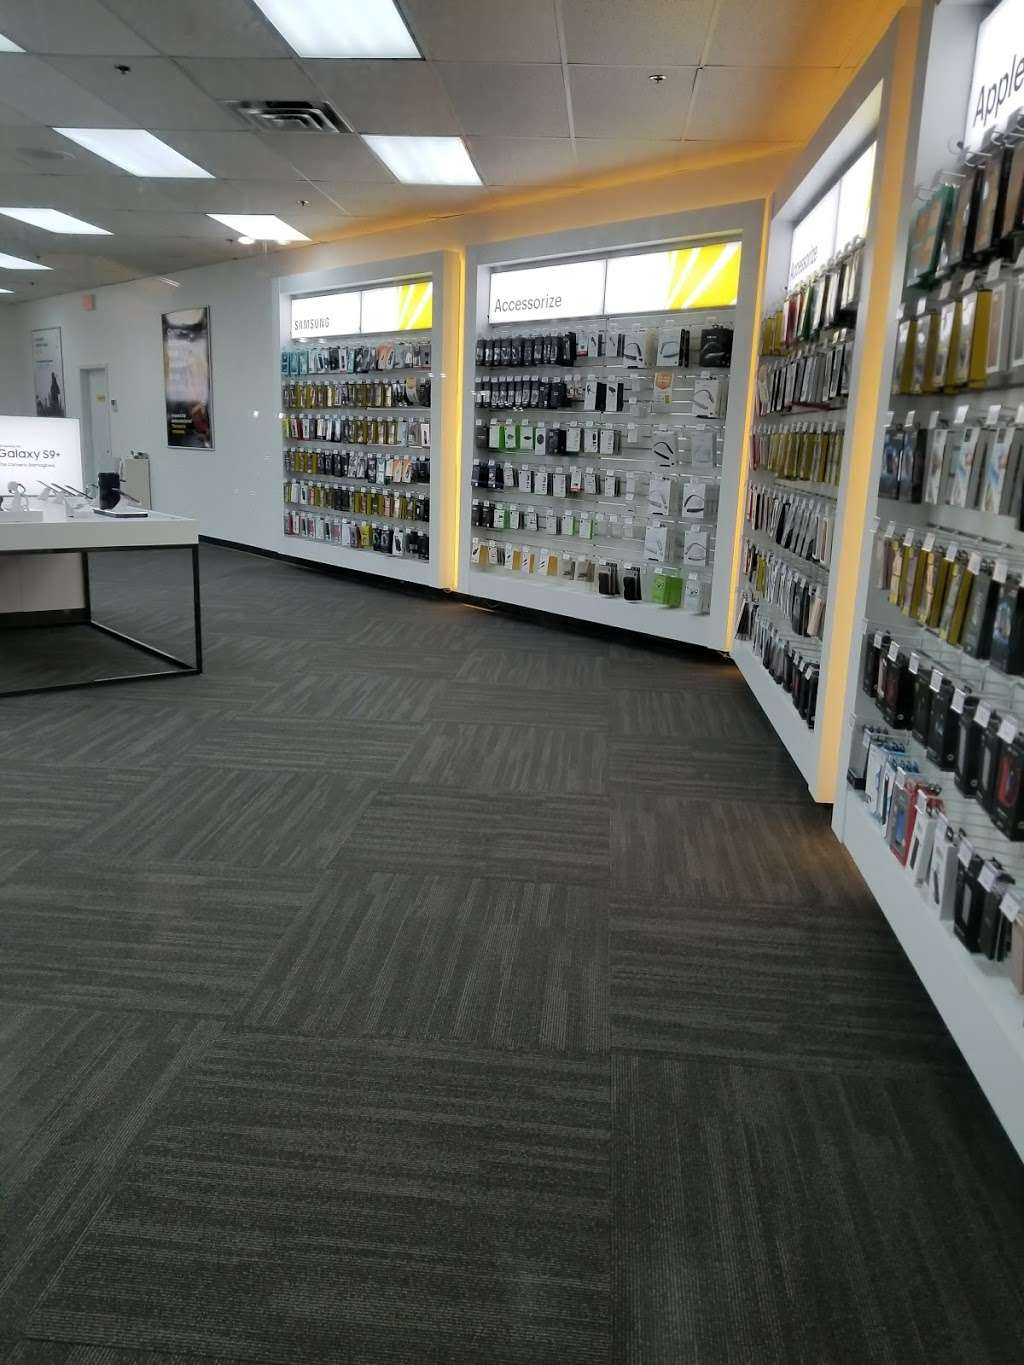 Sprint Store - electronics store  | Photo 6 of 10 | Address: 517 River Rd, Edgewater, NJ 07020, USA | Phone: (201) 654-0920